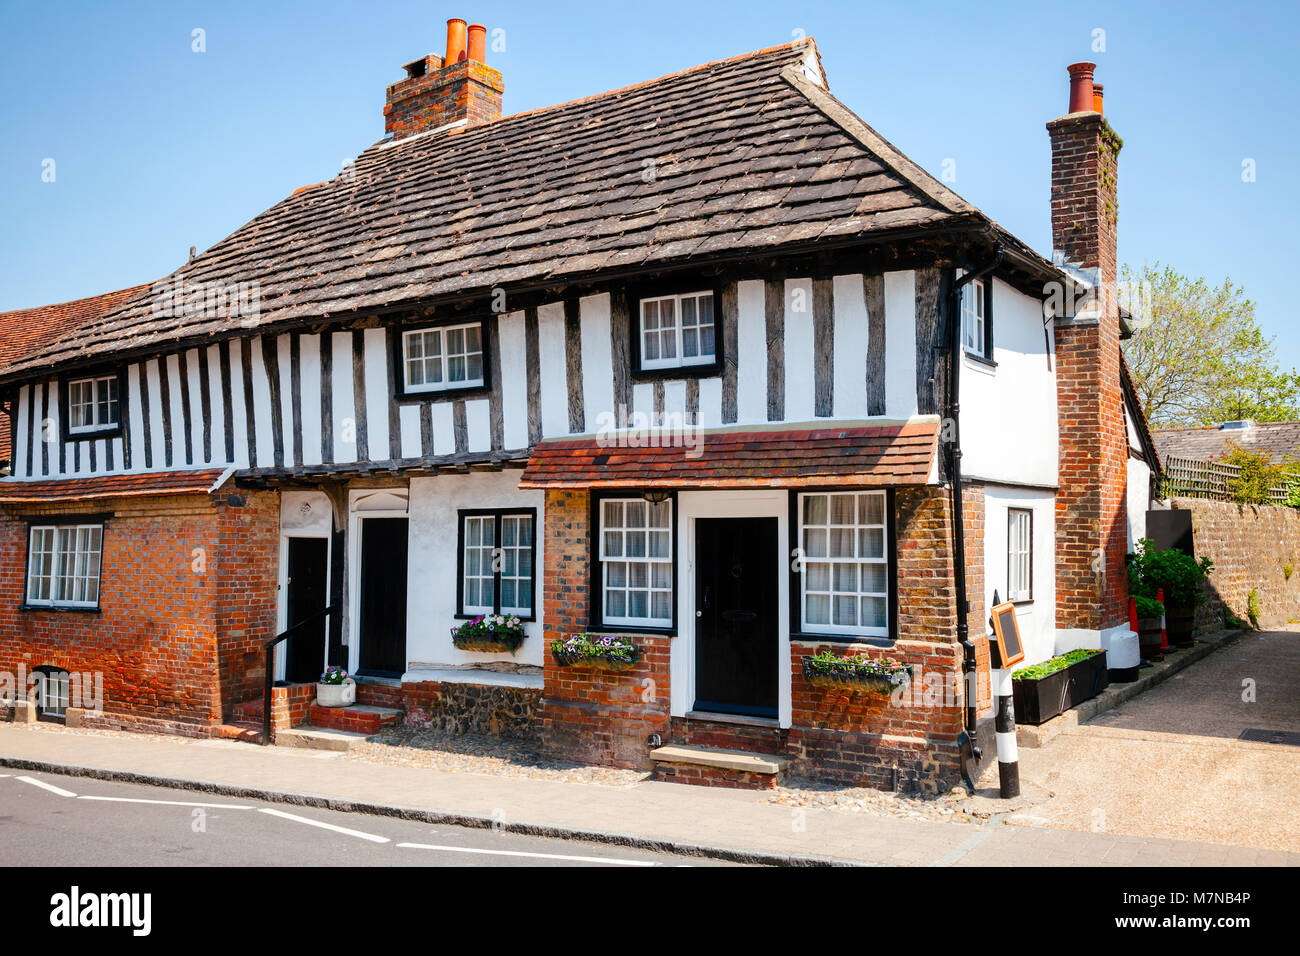 Traditional English Tudor style timber frame cottage with slate roof in Southern  England, UK - Stock Image